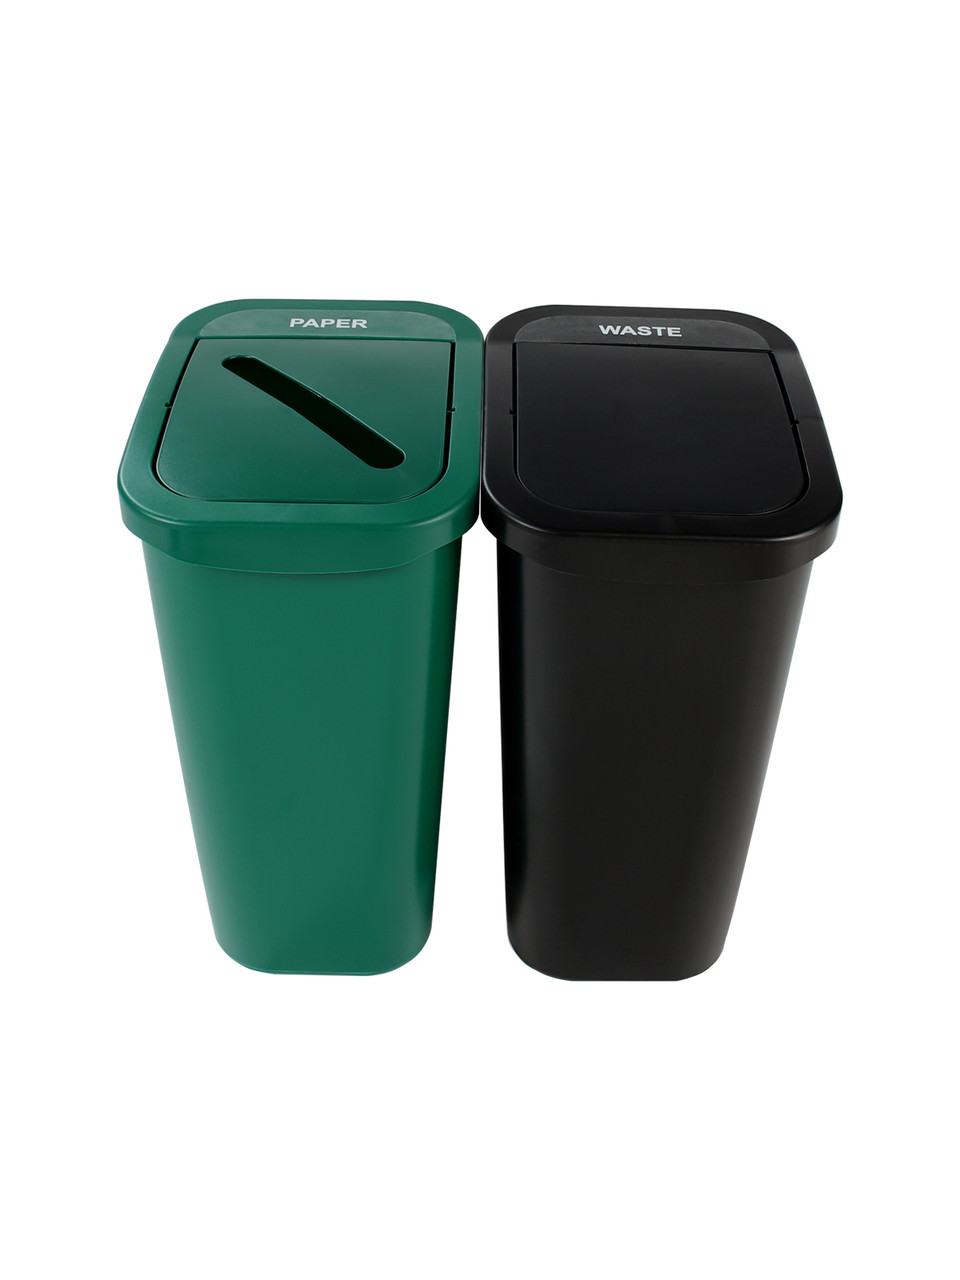 20 Gallon Billi Box Double Trash Can Recycle Bin Combo 8102023-34 (Paper, Waste Swing)